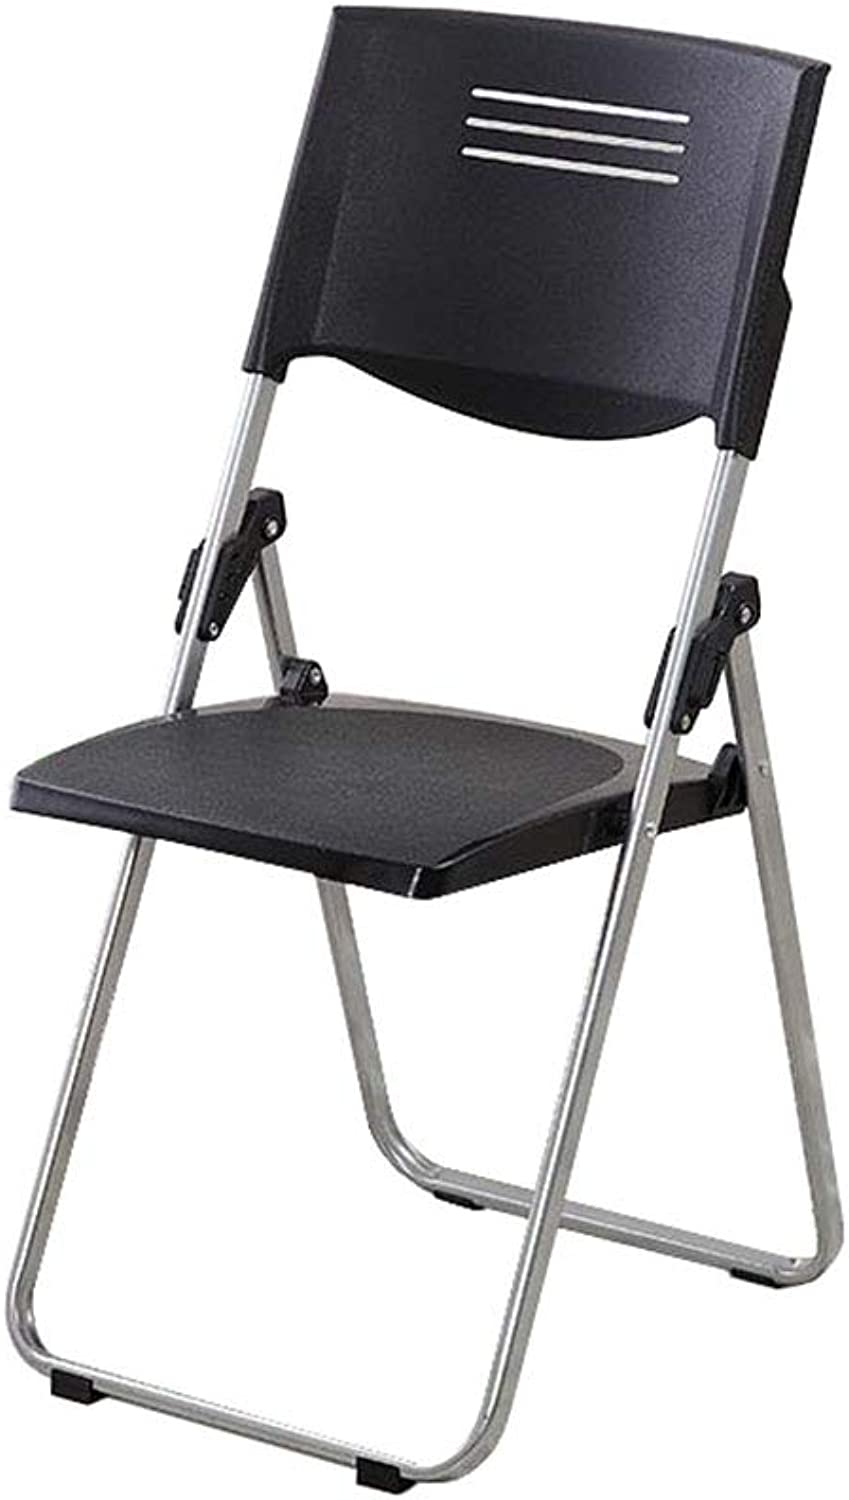 Office Folding Chair Black Plastic Padded Staff Training Meeting Chair Desk Chair